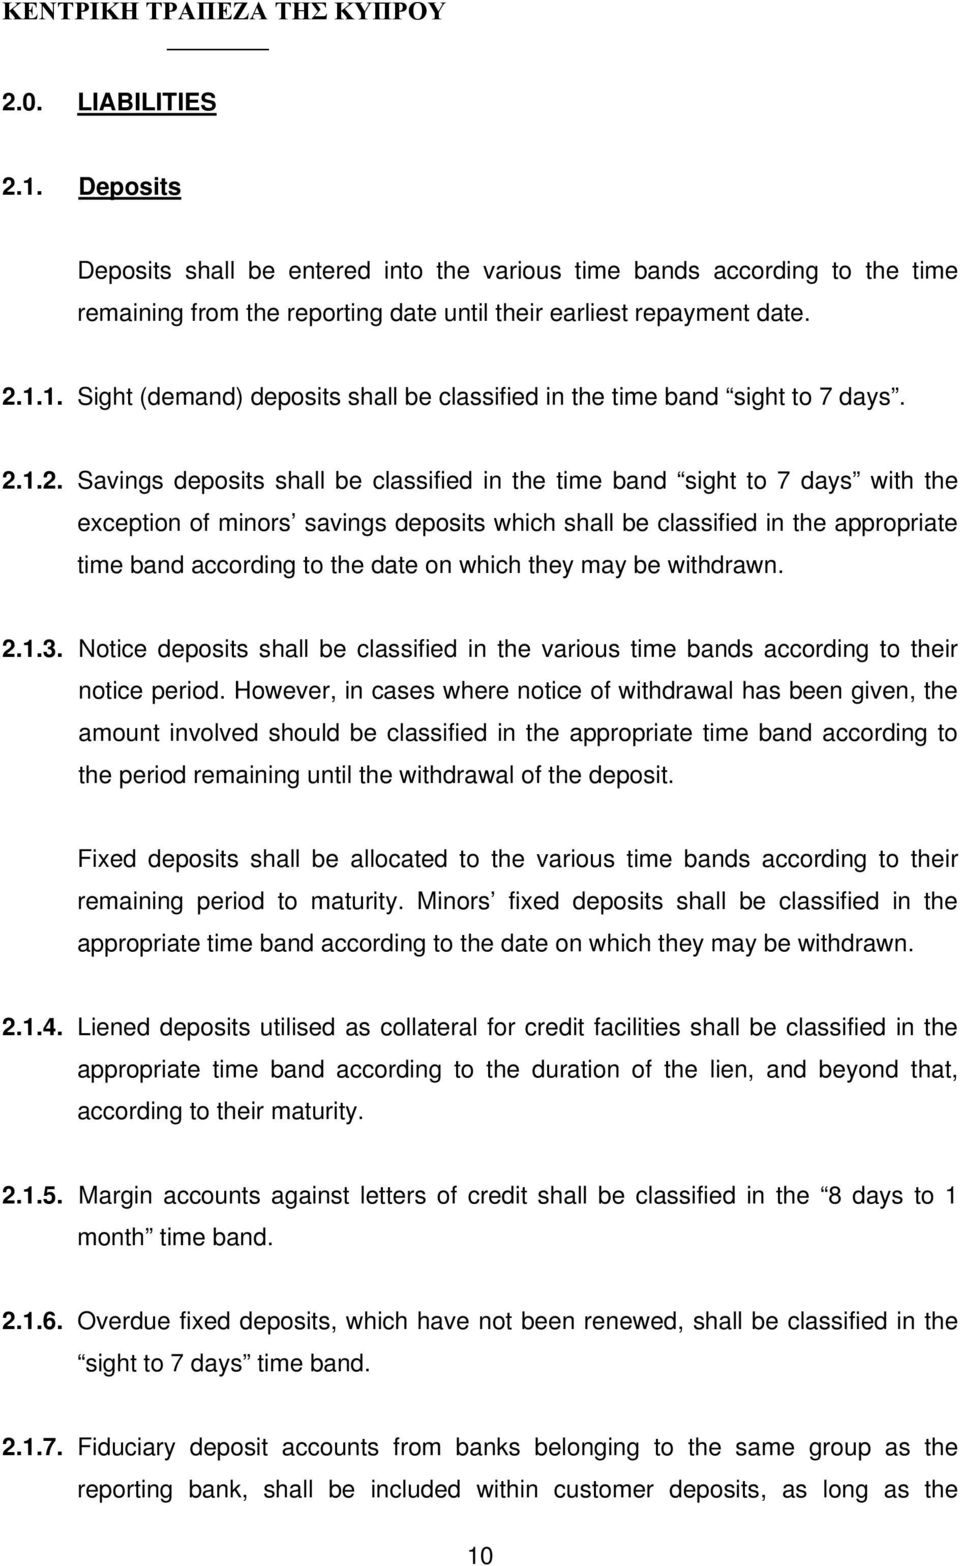 on which they may be withdrawn. 2.1.3. Notice deposits shall be classified in the various time bands according to their notice period.